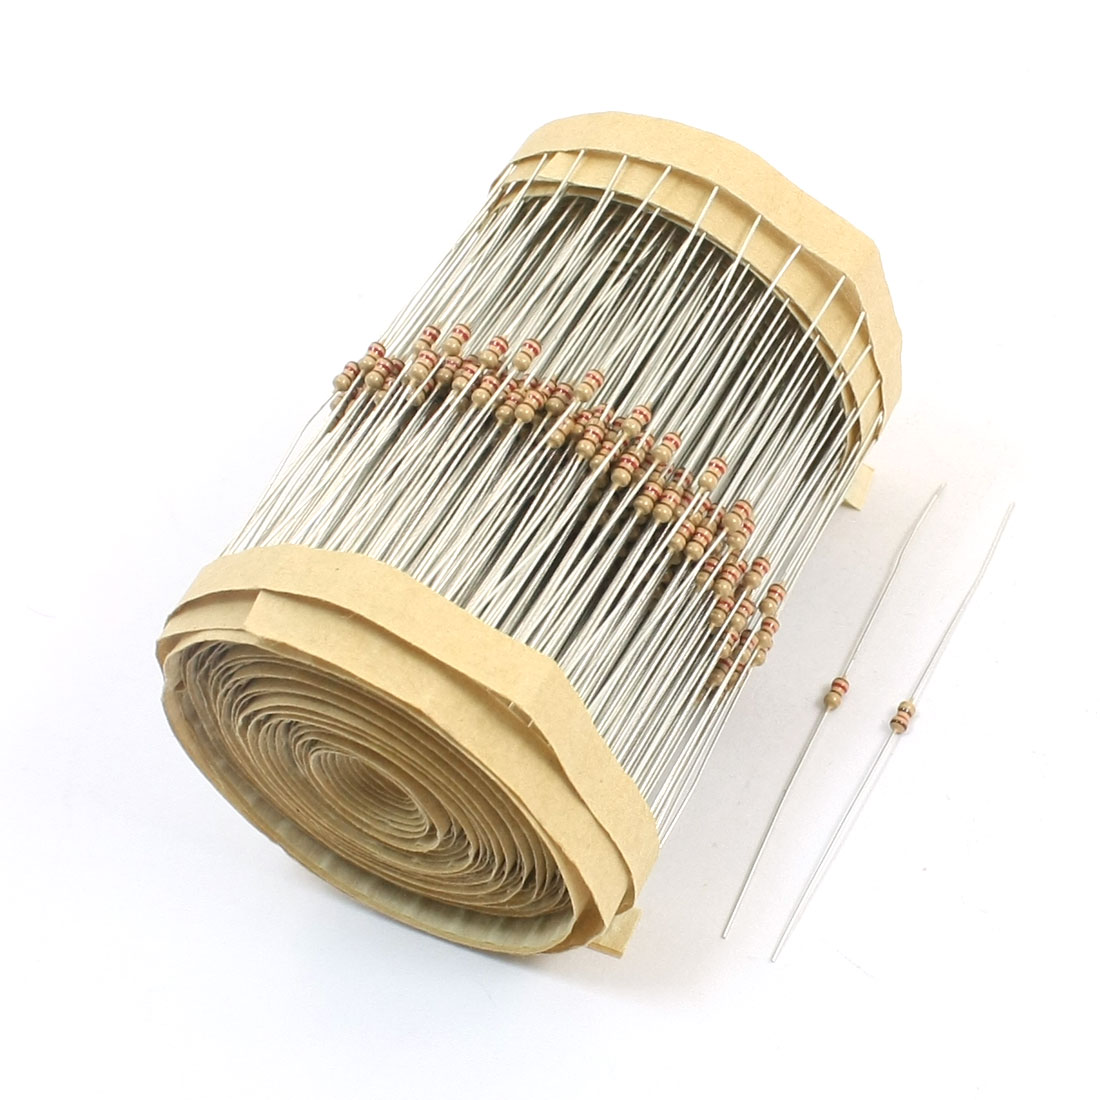 600 Pcs 120 Ohm 1/4W 5% Tolerance Axial Lead Type Through Hole Mounting 4 Color Ring Carbon Film Fix Resistors